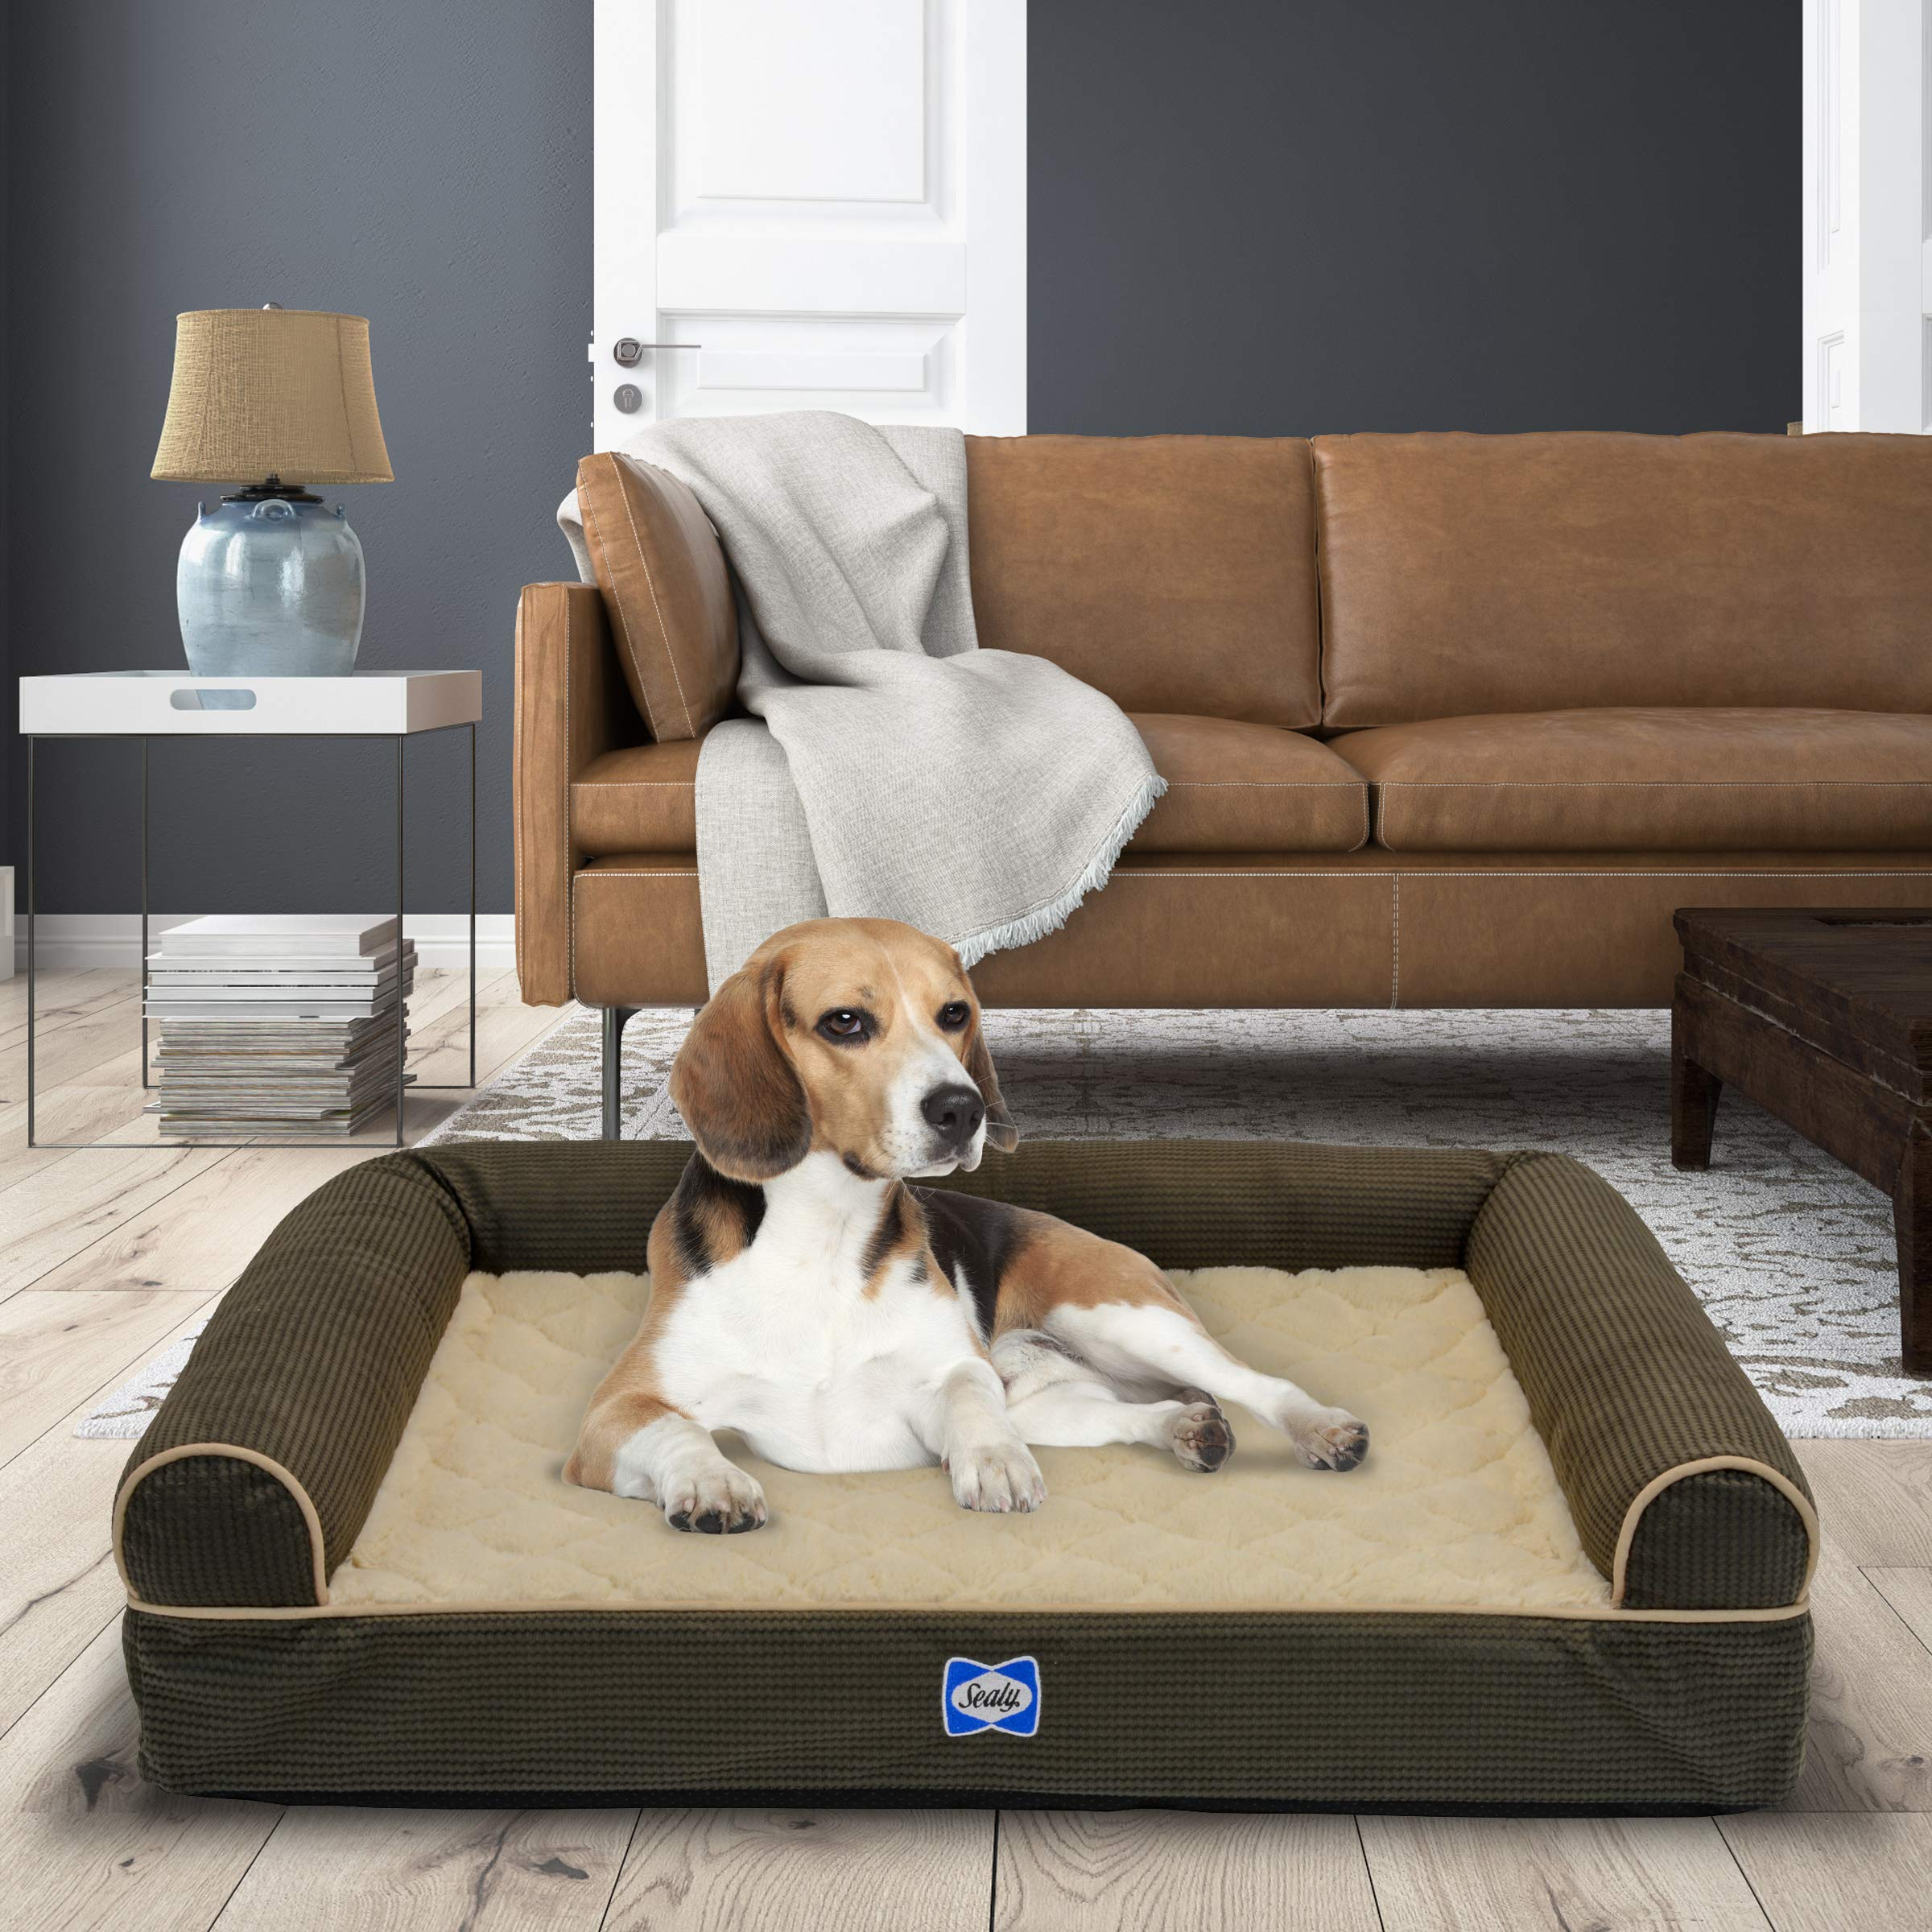 Sealy Ultra Plush Sofa-Style Bolster Dog Bed Brown, Small - Orthopedic Foam Pet Bed with Machine Washable Plush Cover